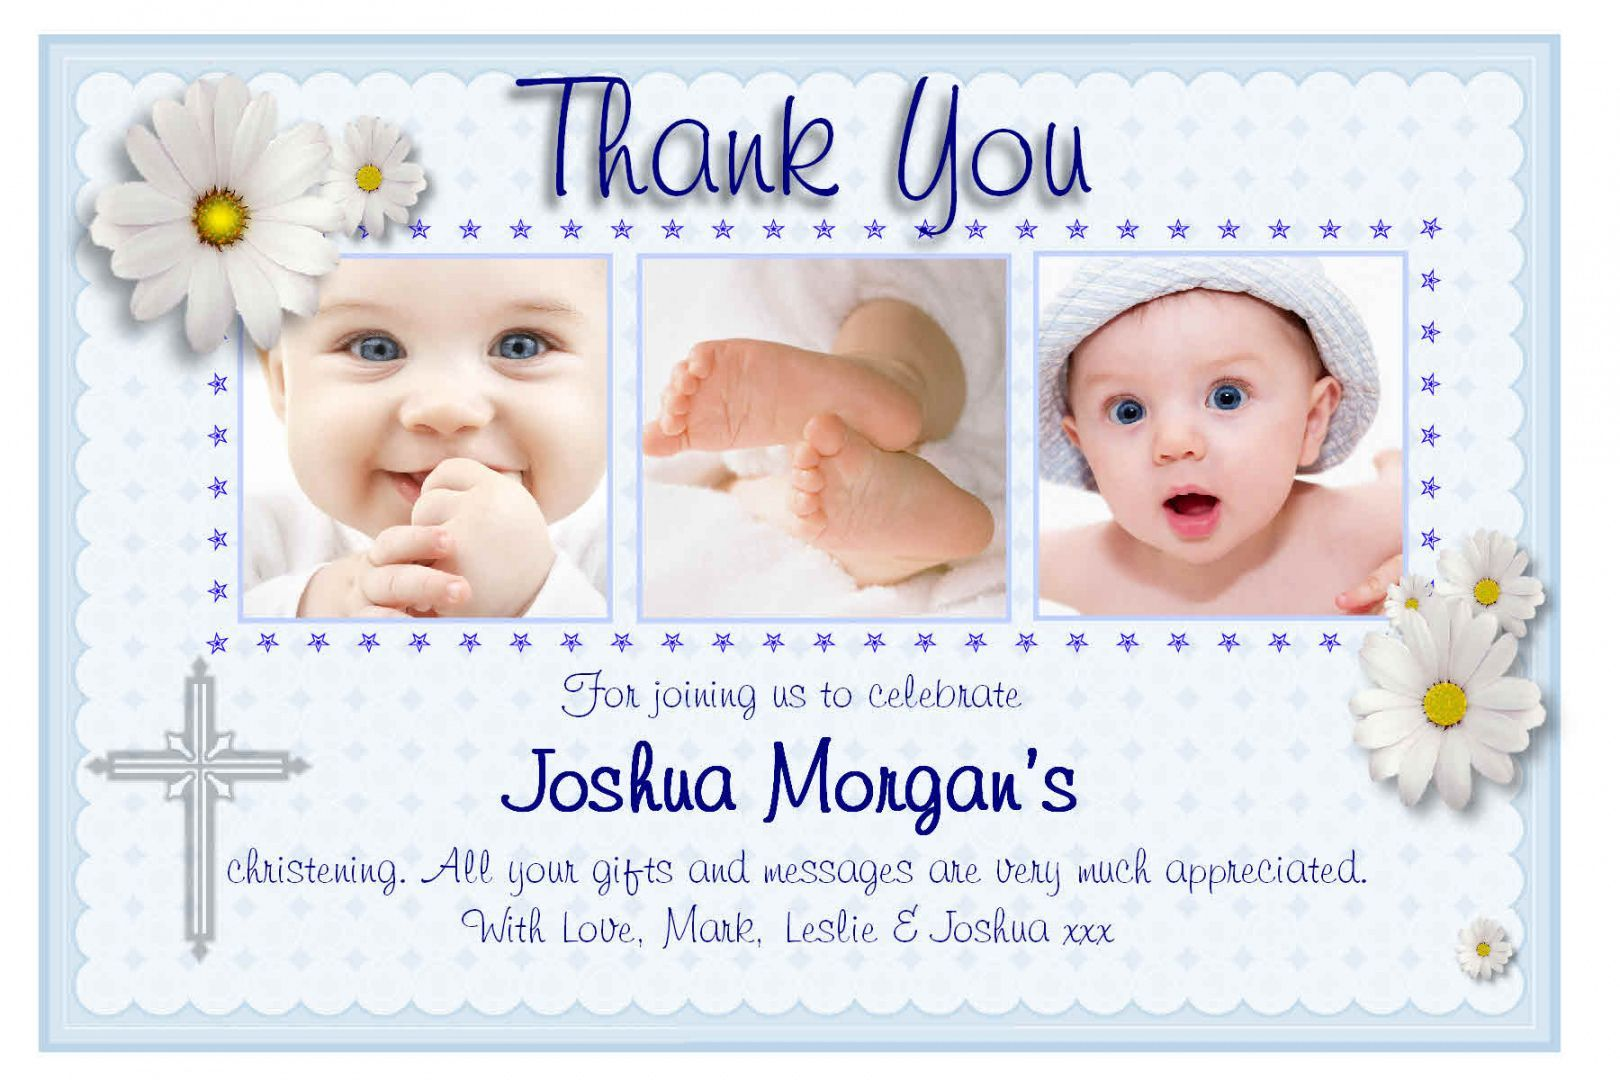 Explore Our Printable Thank You Card For Baptism Baptism Thank You Cards Christening Thank You Cards Personalized Baptism